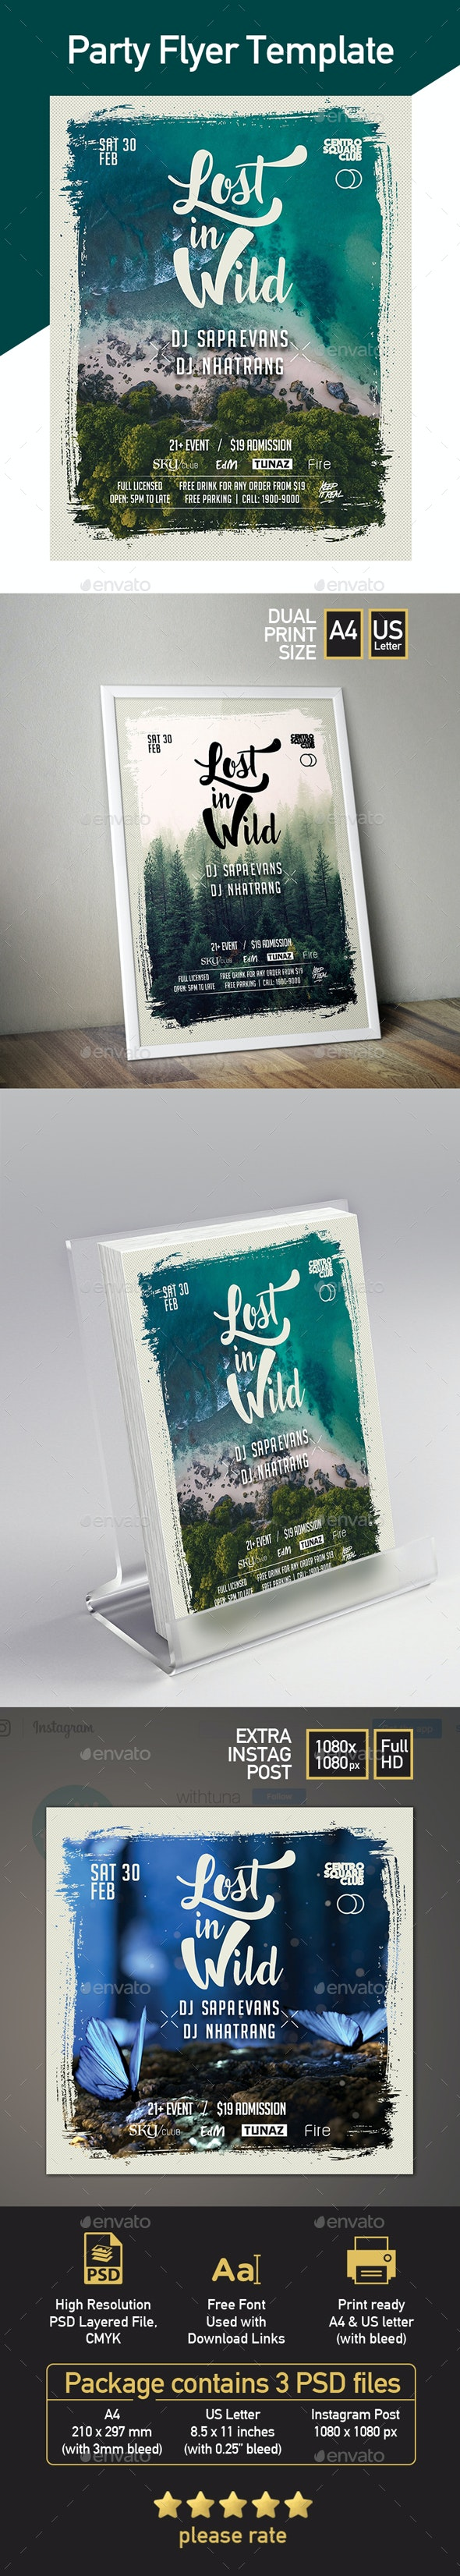 Party Flyer Template - Lost in Wild - 3 Templates in 1 Package - Clubs & Parties Events